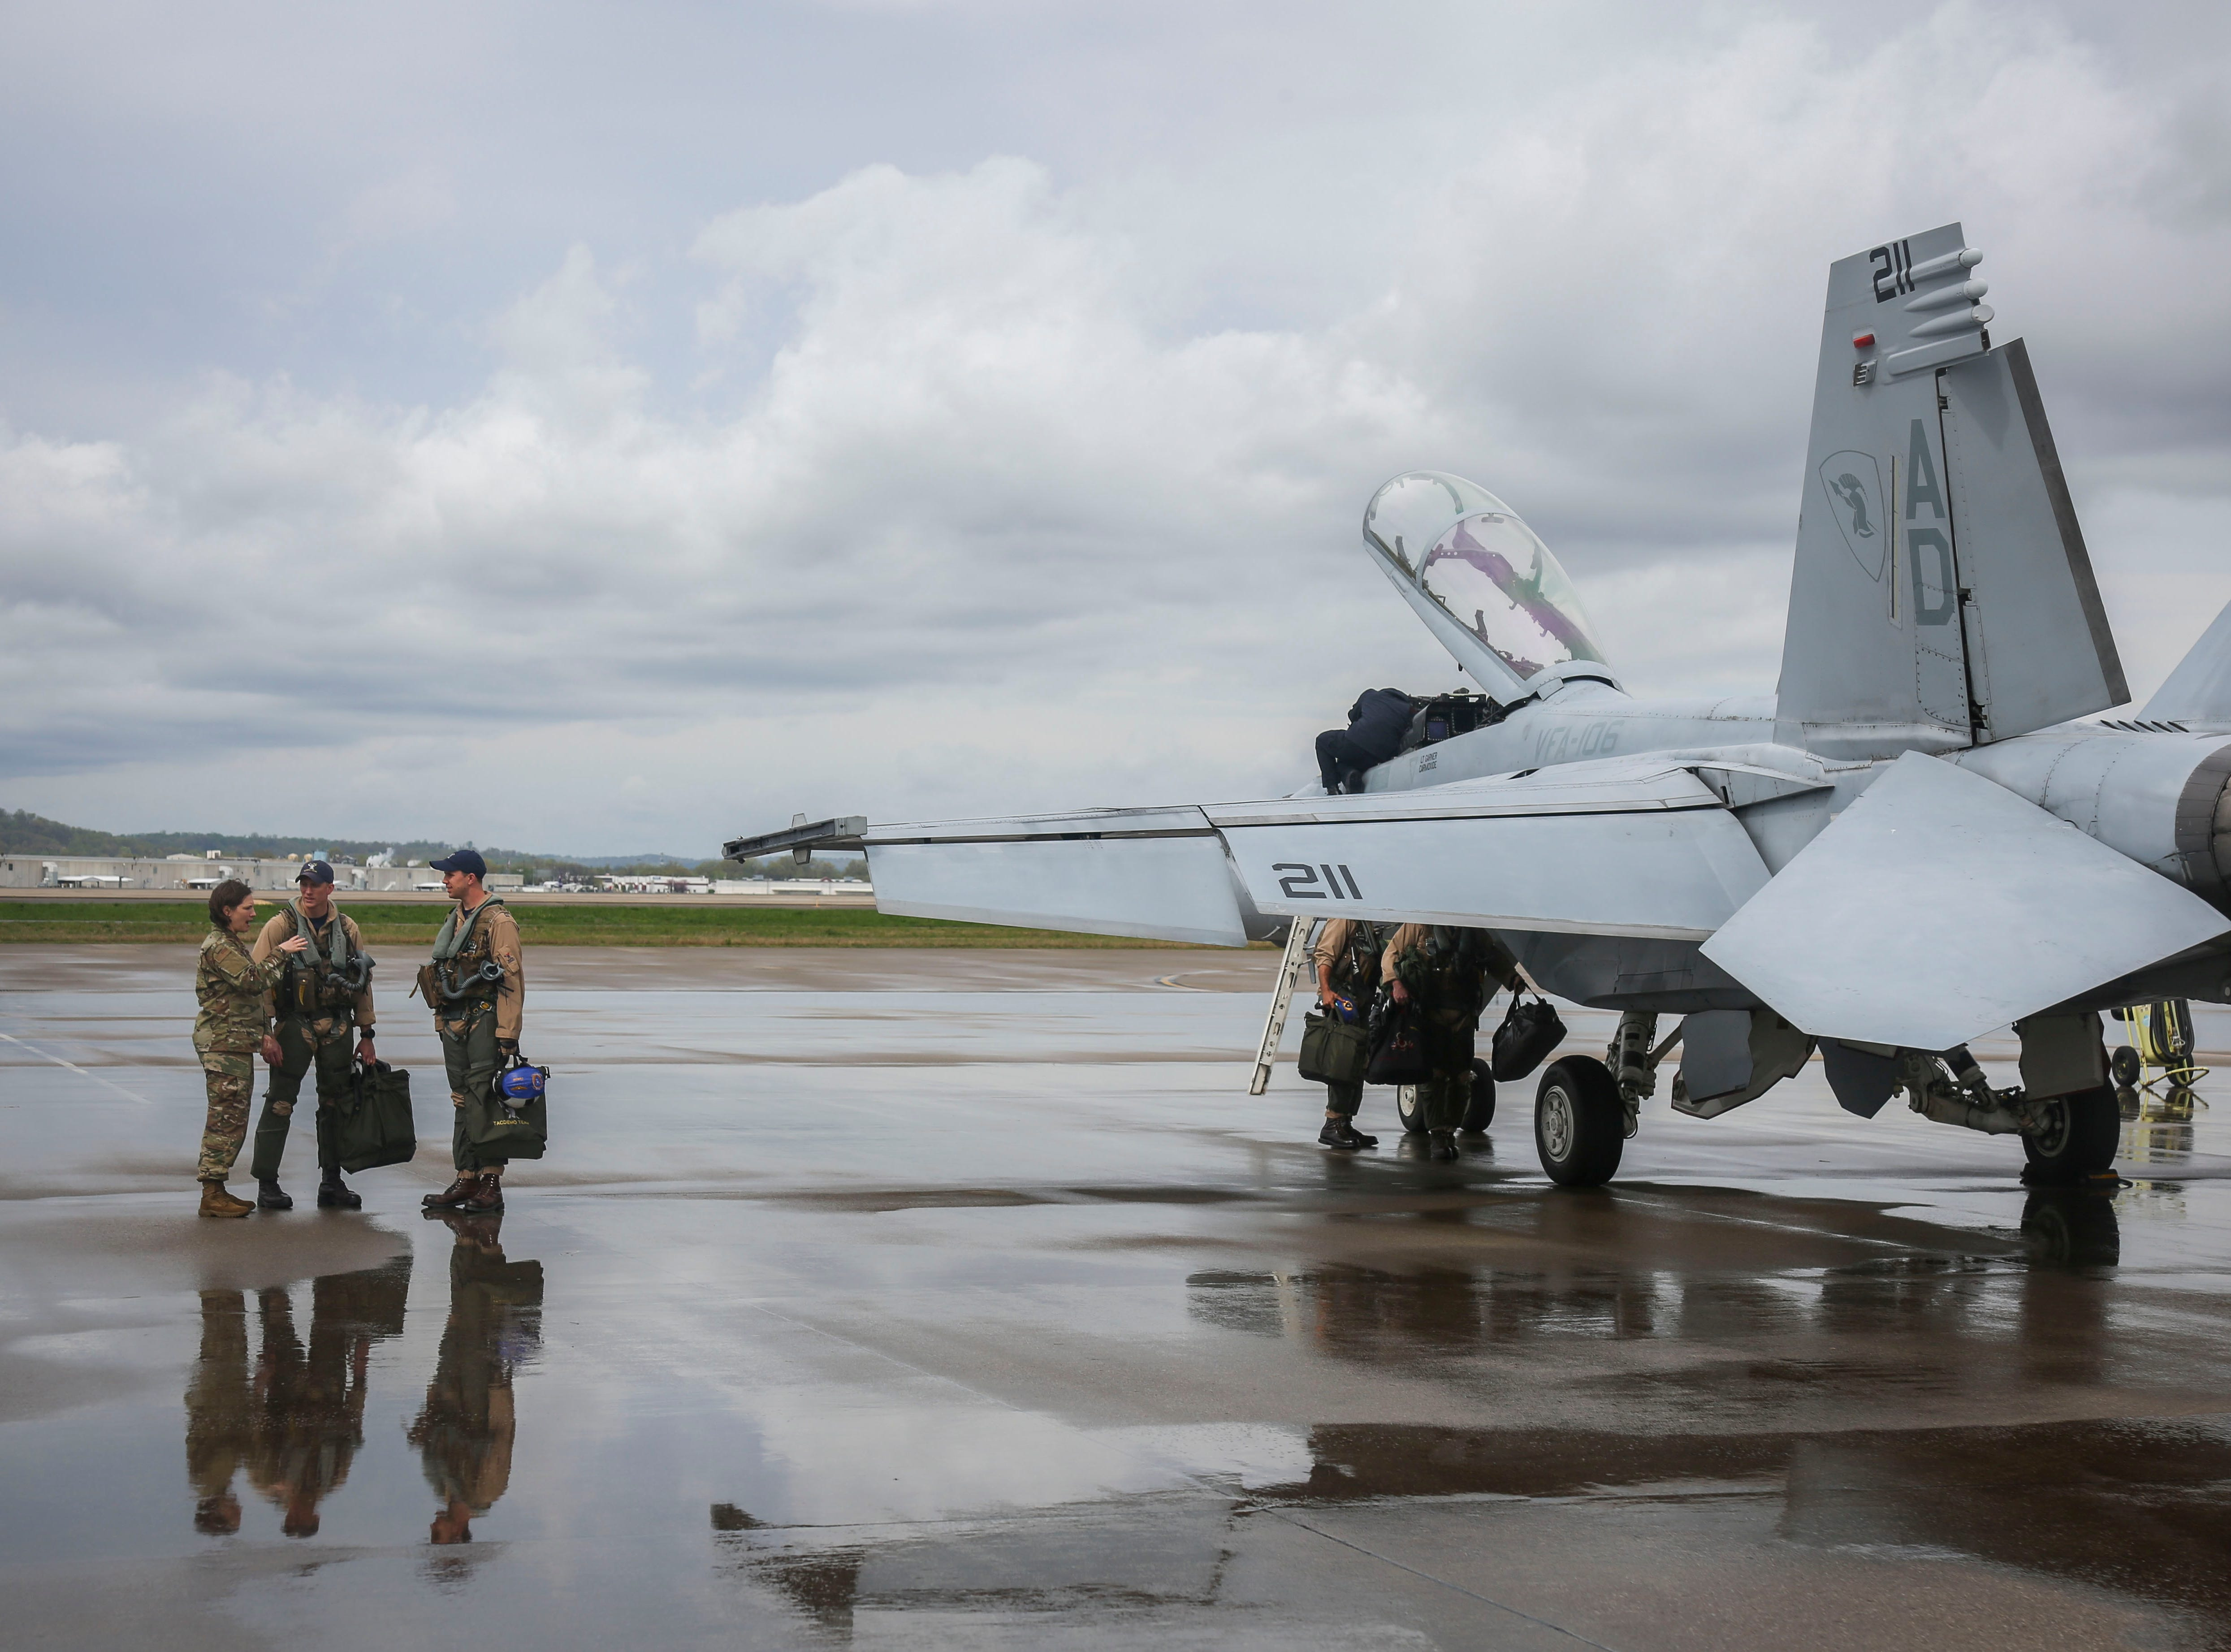 Crews service a F/A-18 Hornets, twin-engine, supersonic combat jets, at the Kentucky Air National Guard base ahead of practice for Thunder Over Louisville in Louisville, Ky. on Friday, April 12, 2019.